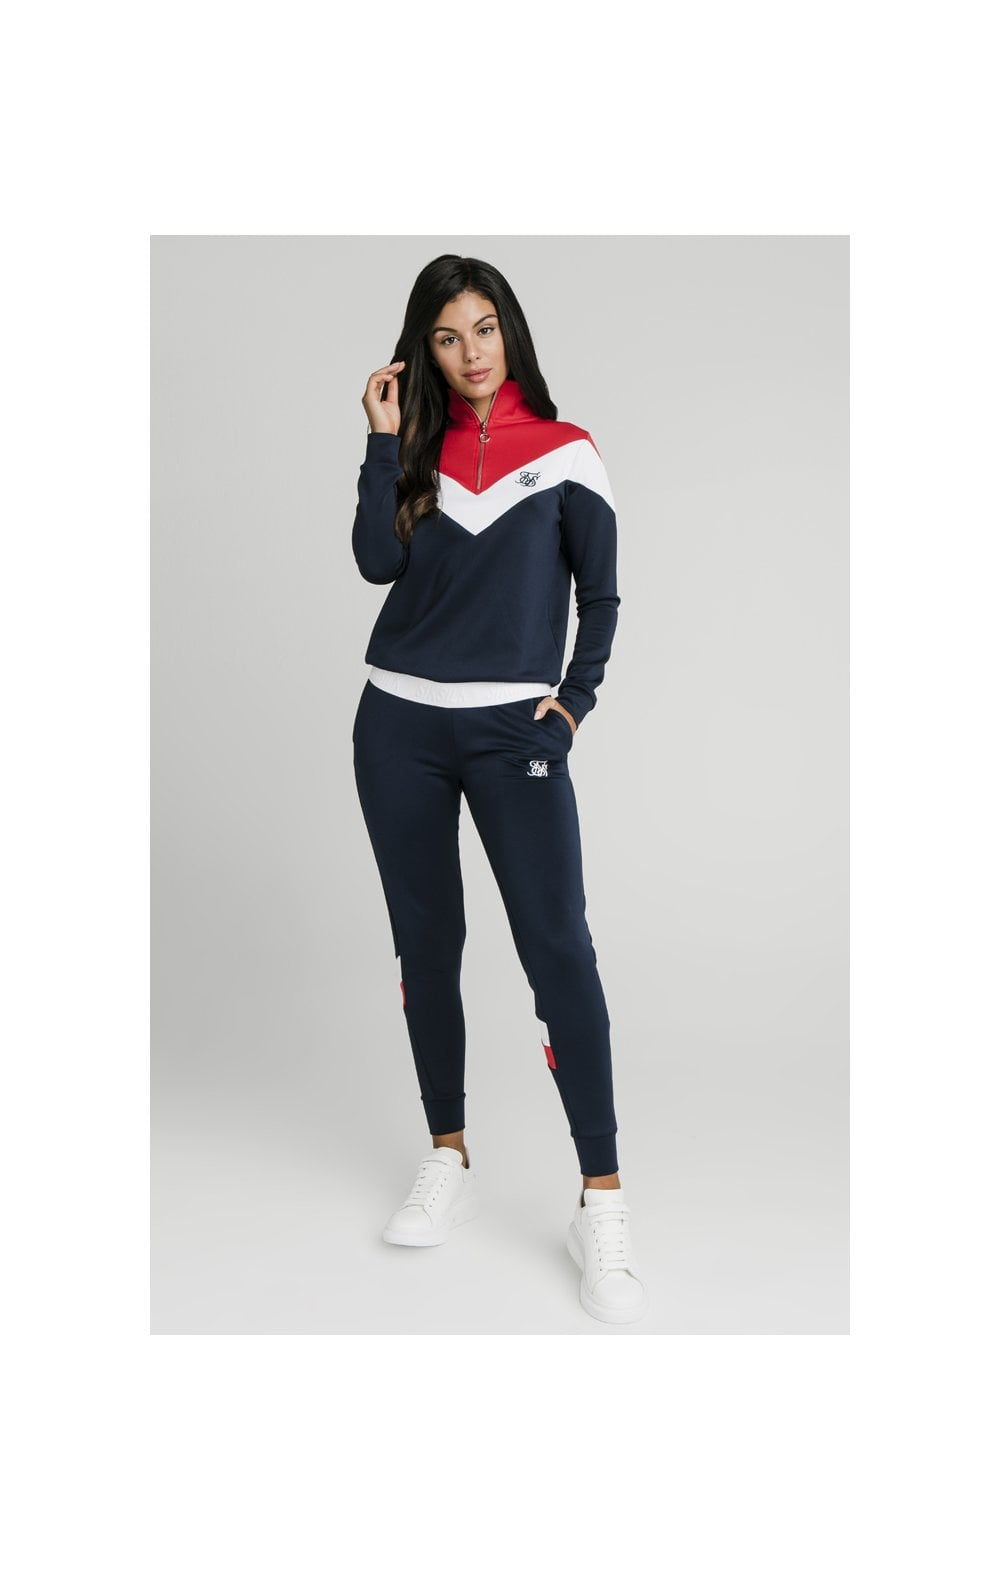 SikSilk Retro Sport Track Top - Navy, Red & White (4)